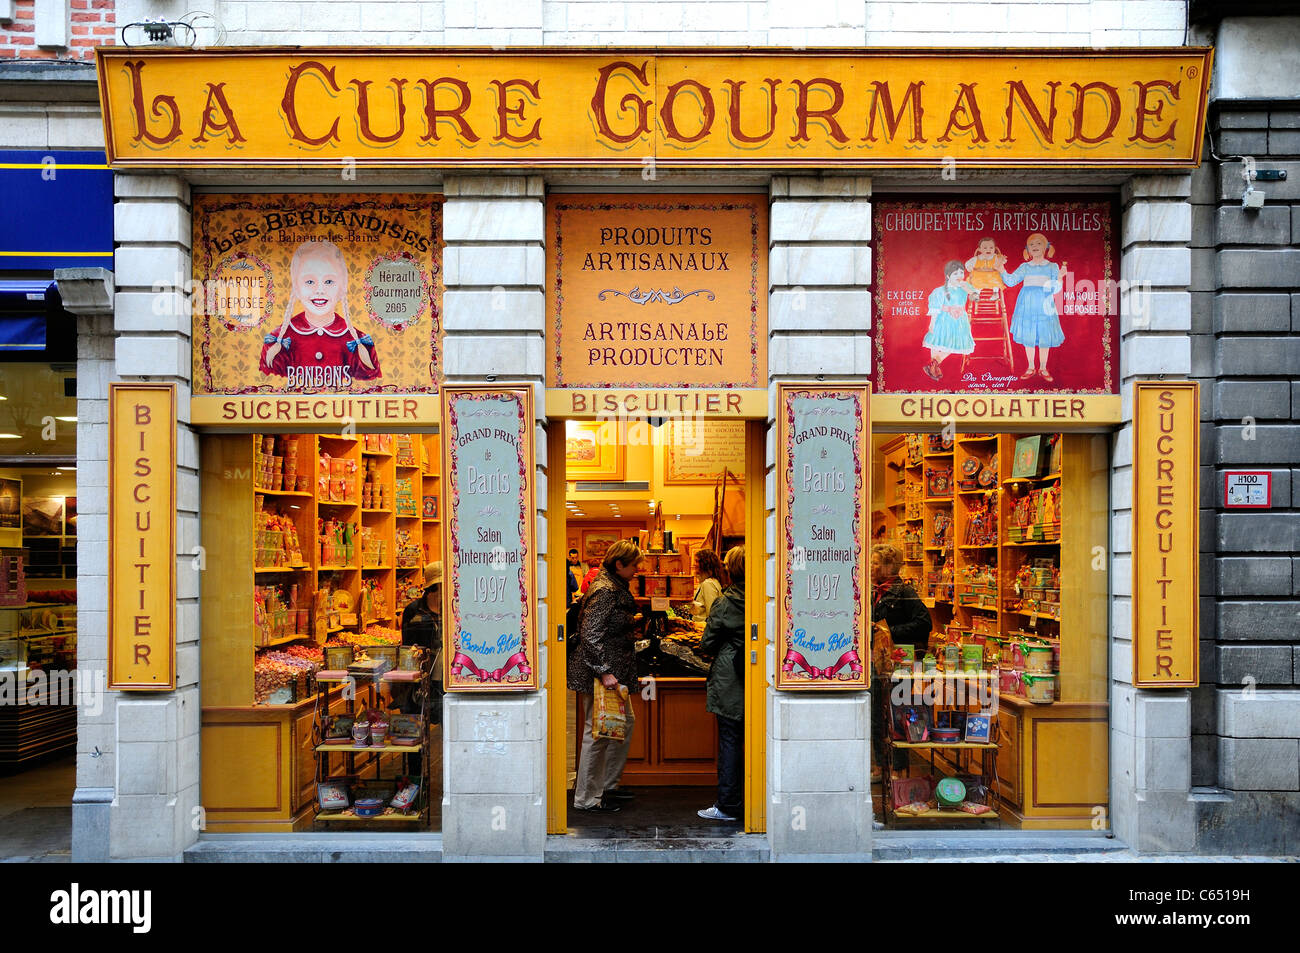 Brussels, Belgium. La Cure Gourmande - confectioner's shop - Stock Image